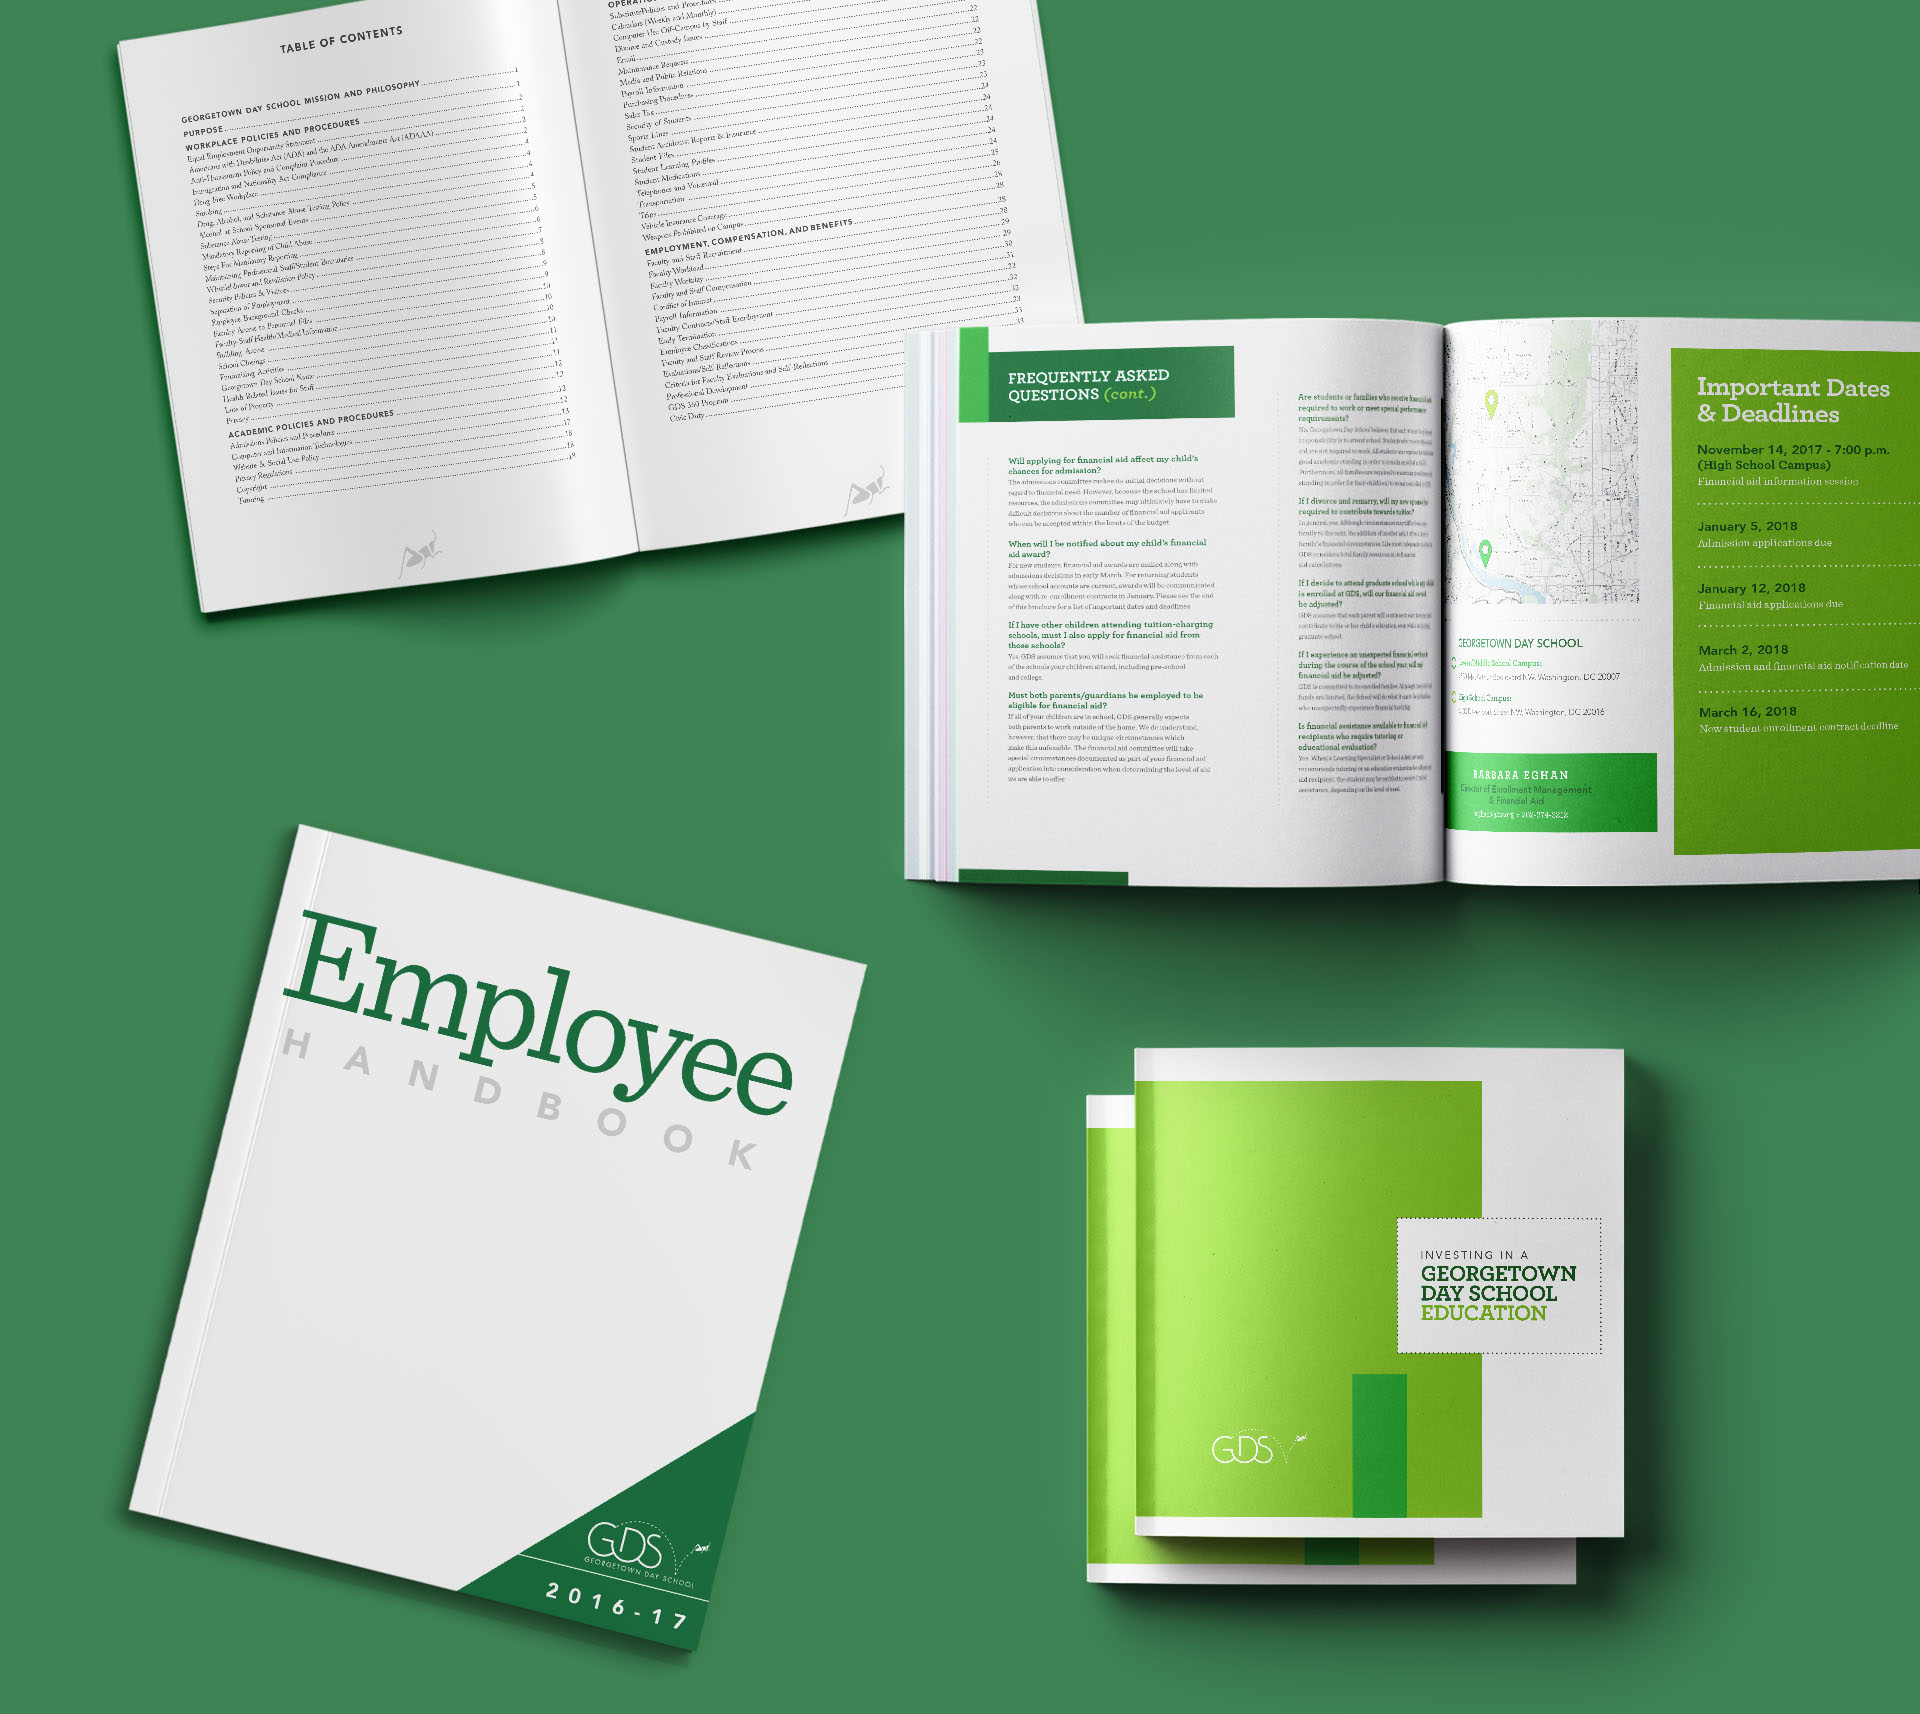 employee handbook cover and interior pages for Georgetown Day School